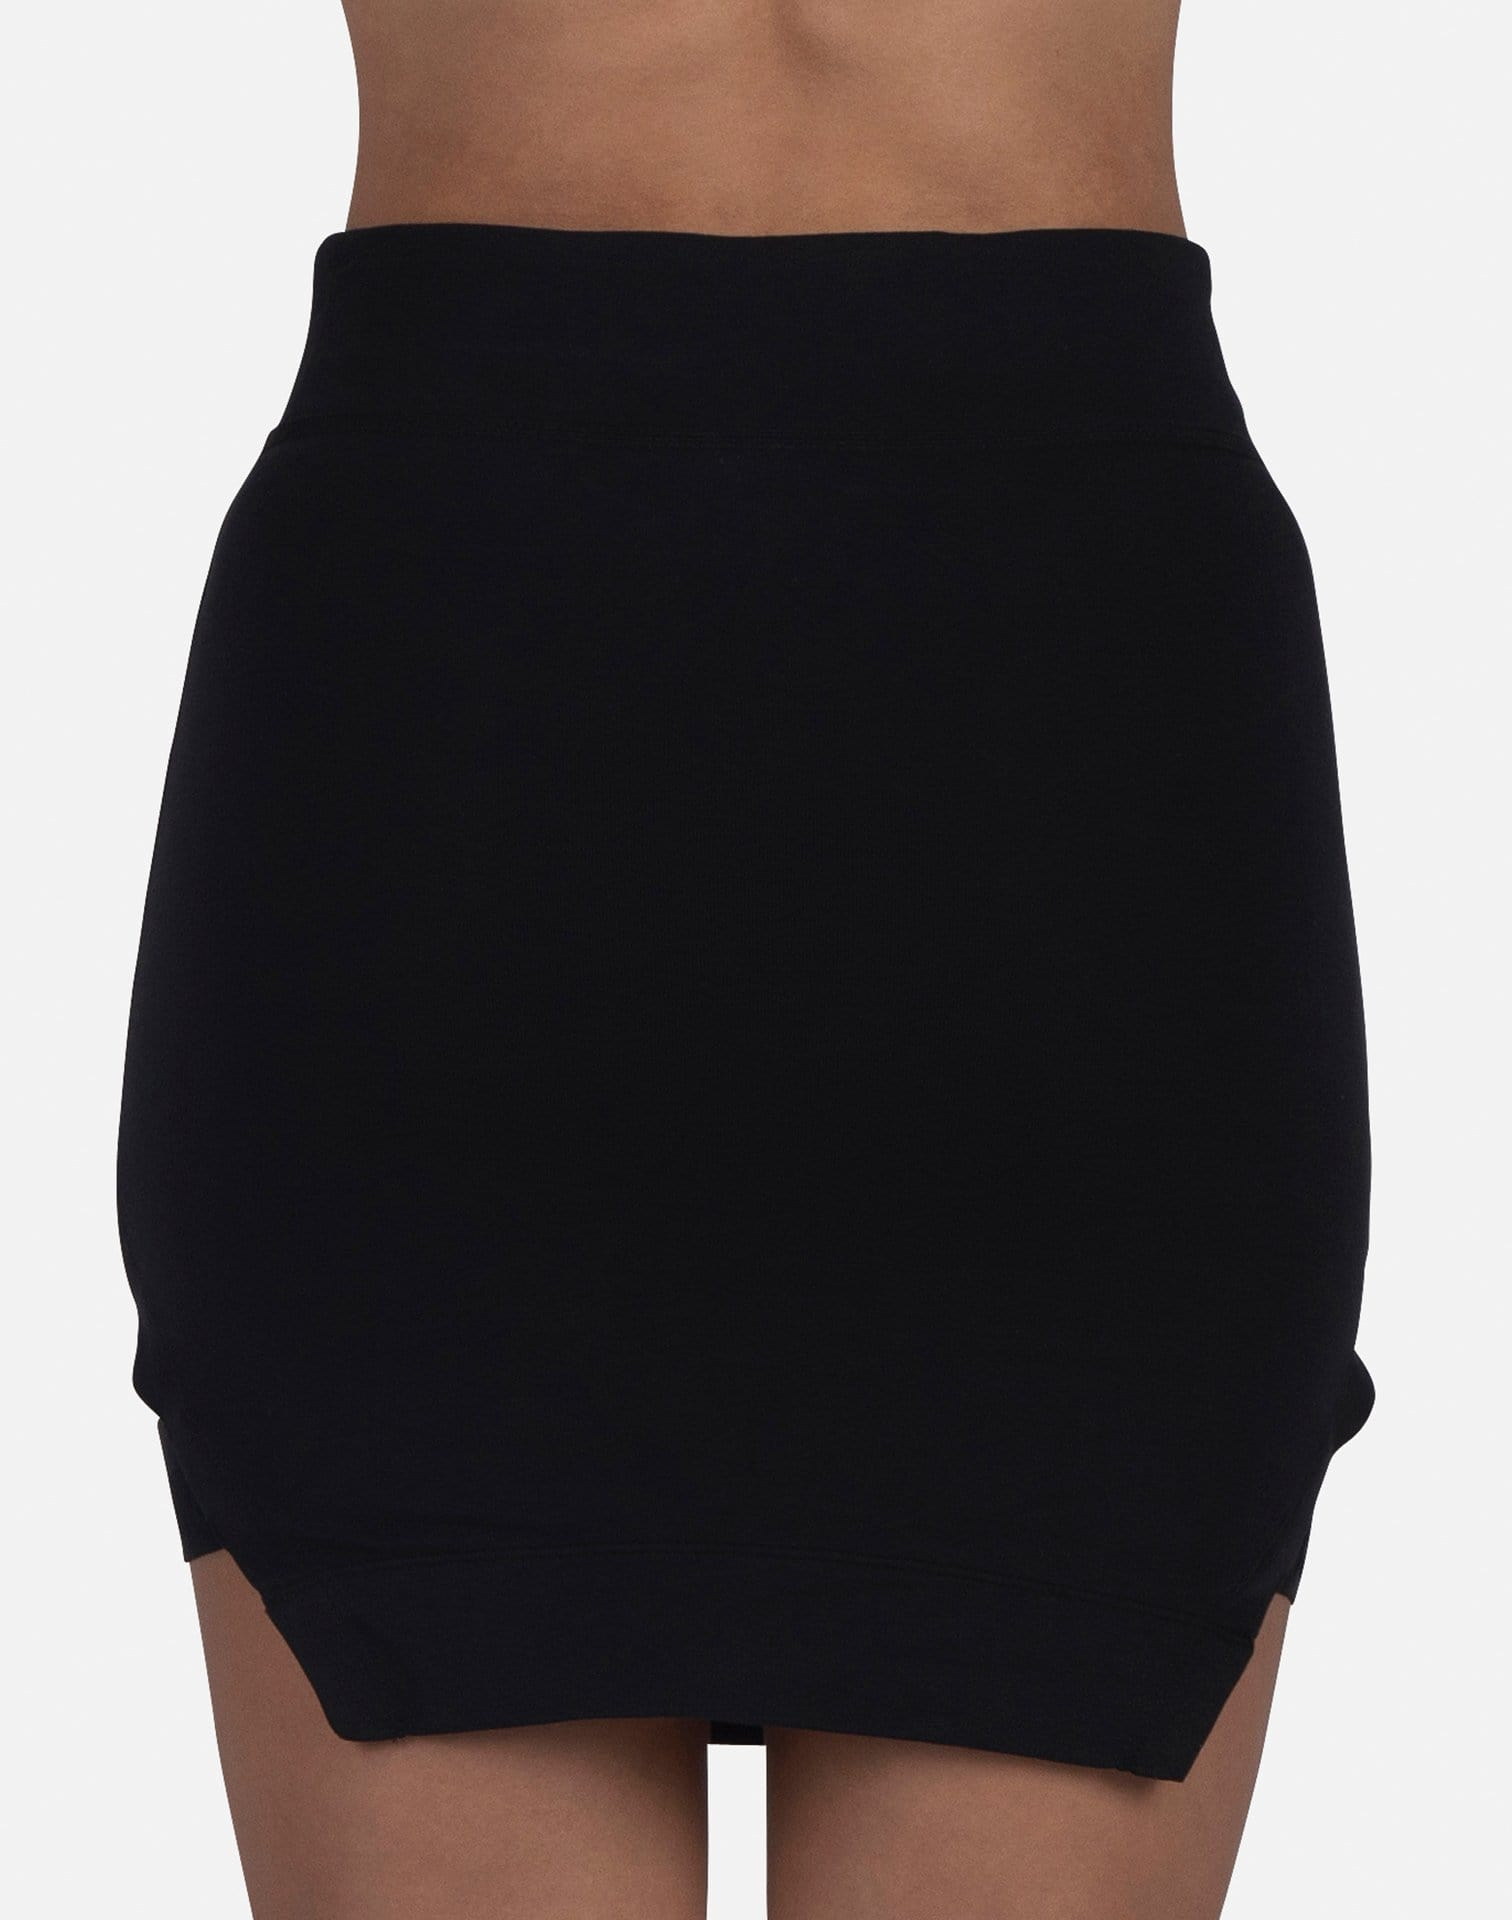 Nike Women's Air Skirt